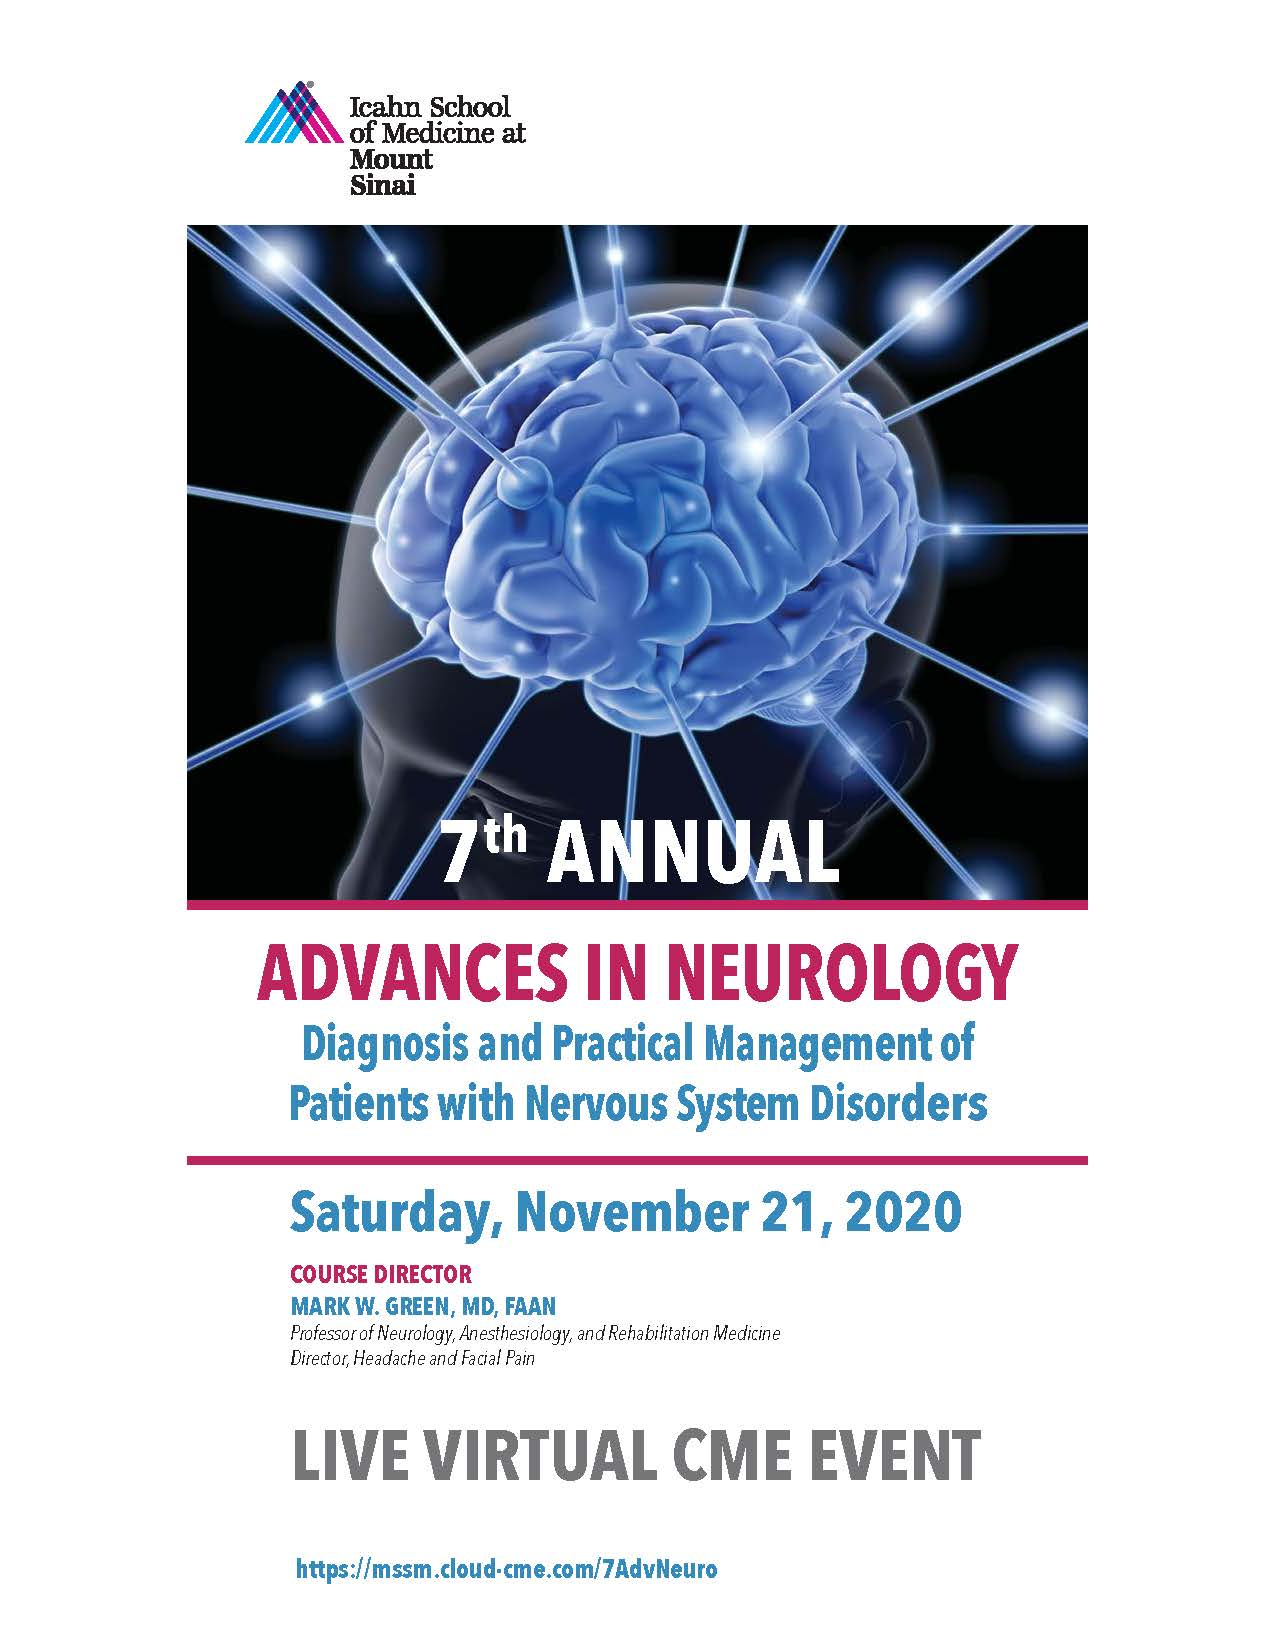 7th Annual Advances in Neurology: Diagnosis and Practical Management of Patients with Nervous System Disorders Banner